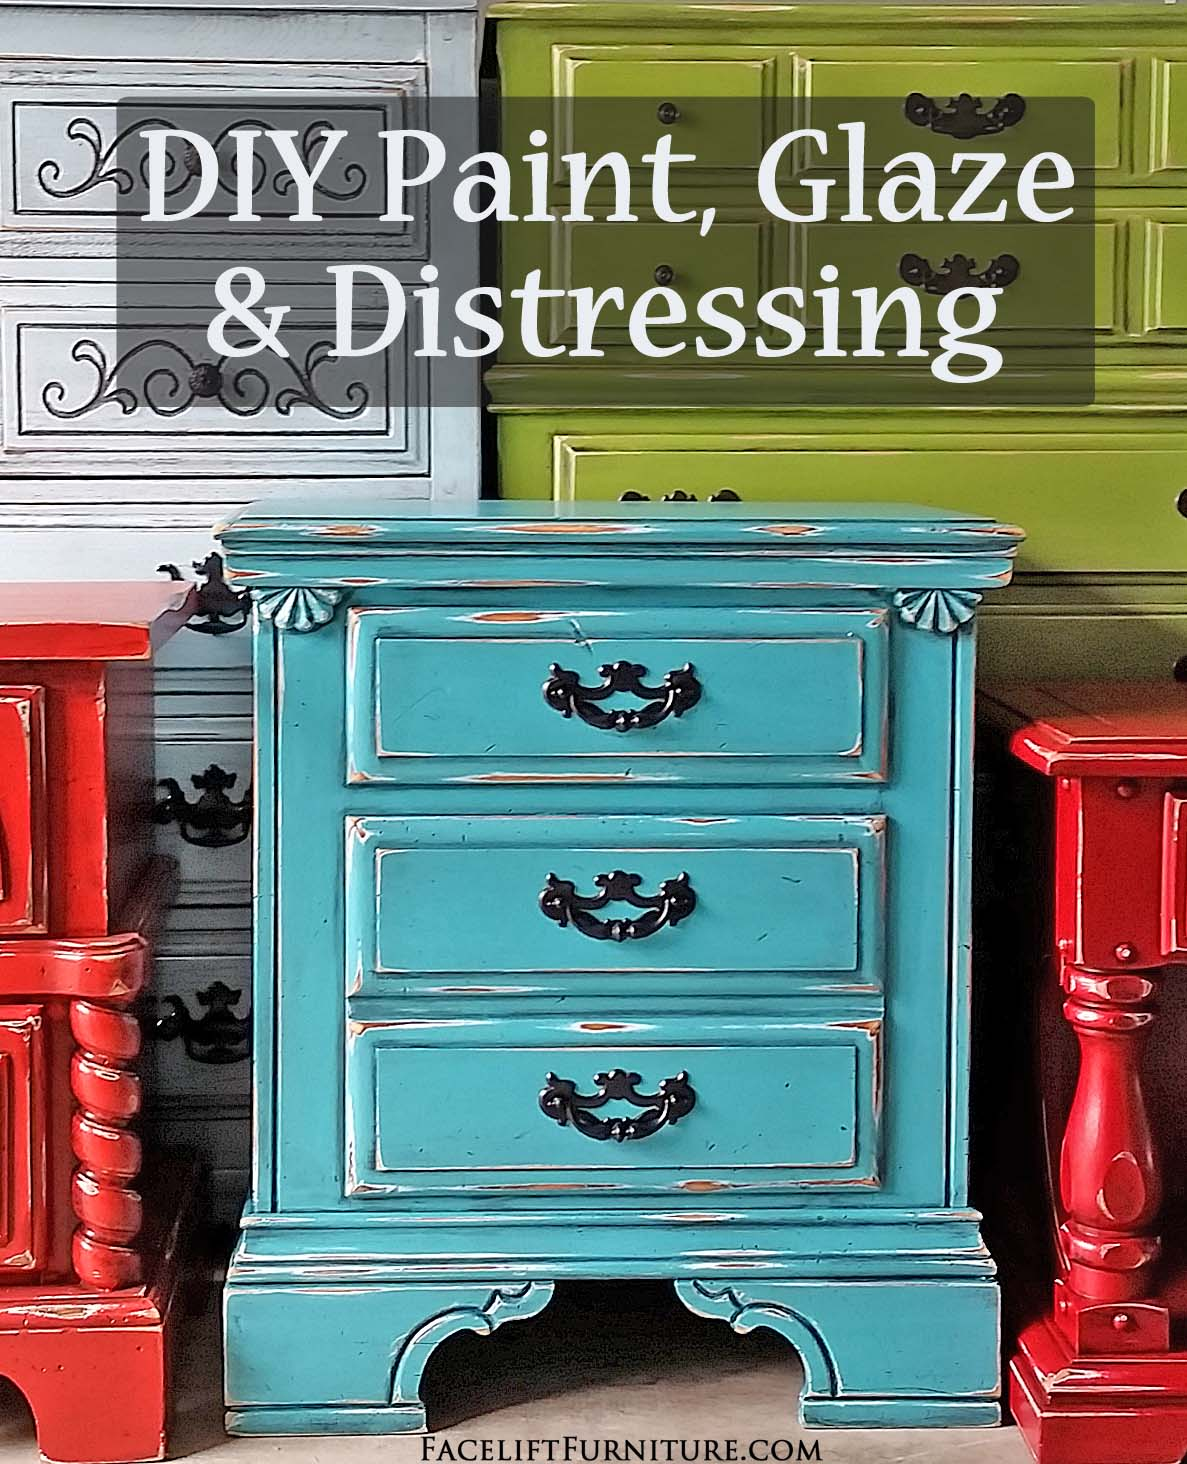 DIY Paint, Glaze U0026 Distressing   Ideas U0026 Inspiration From Facelift Furniture